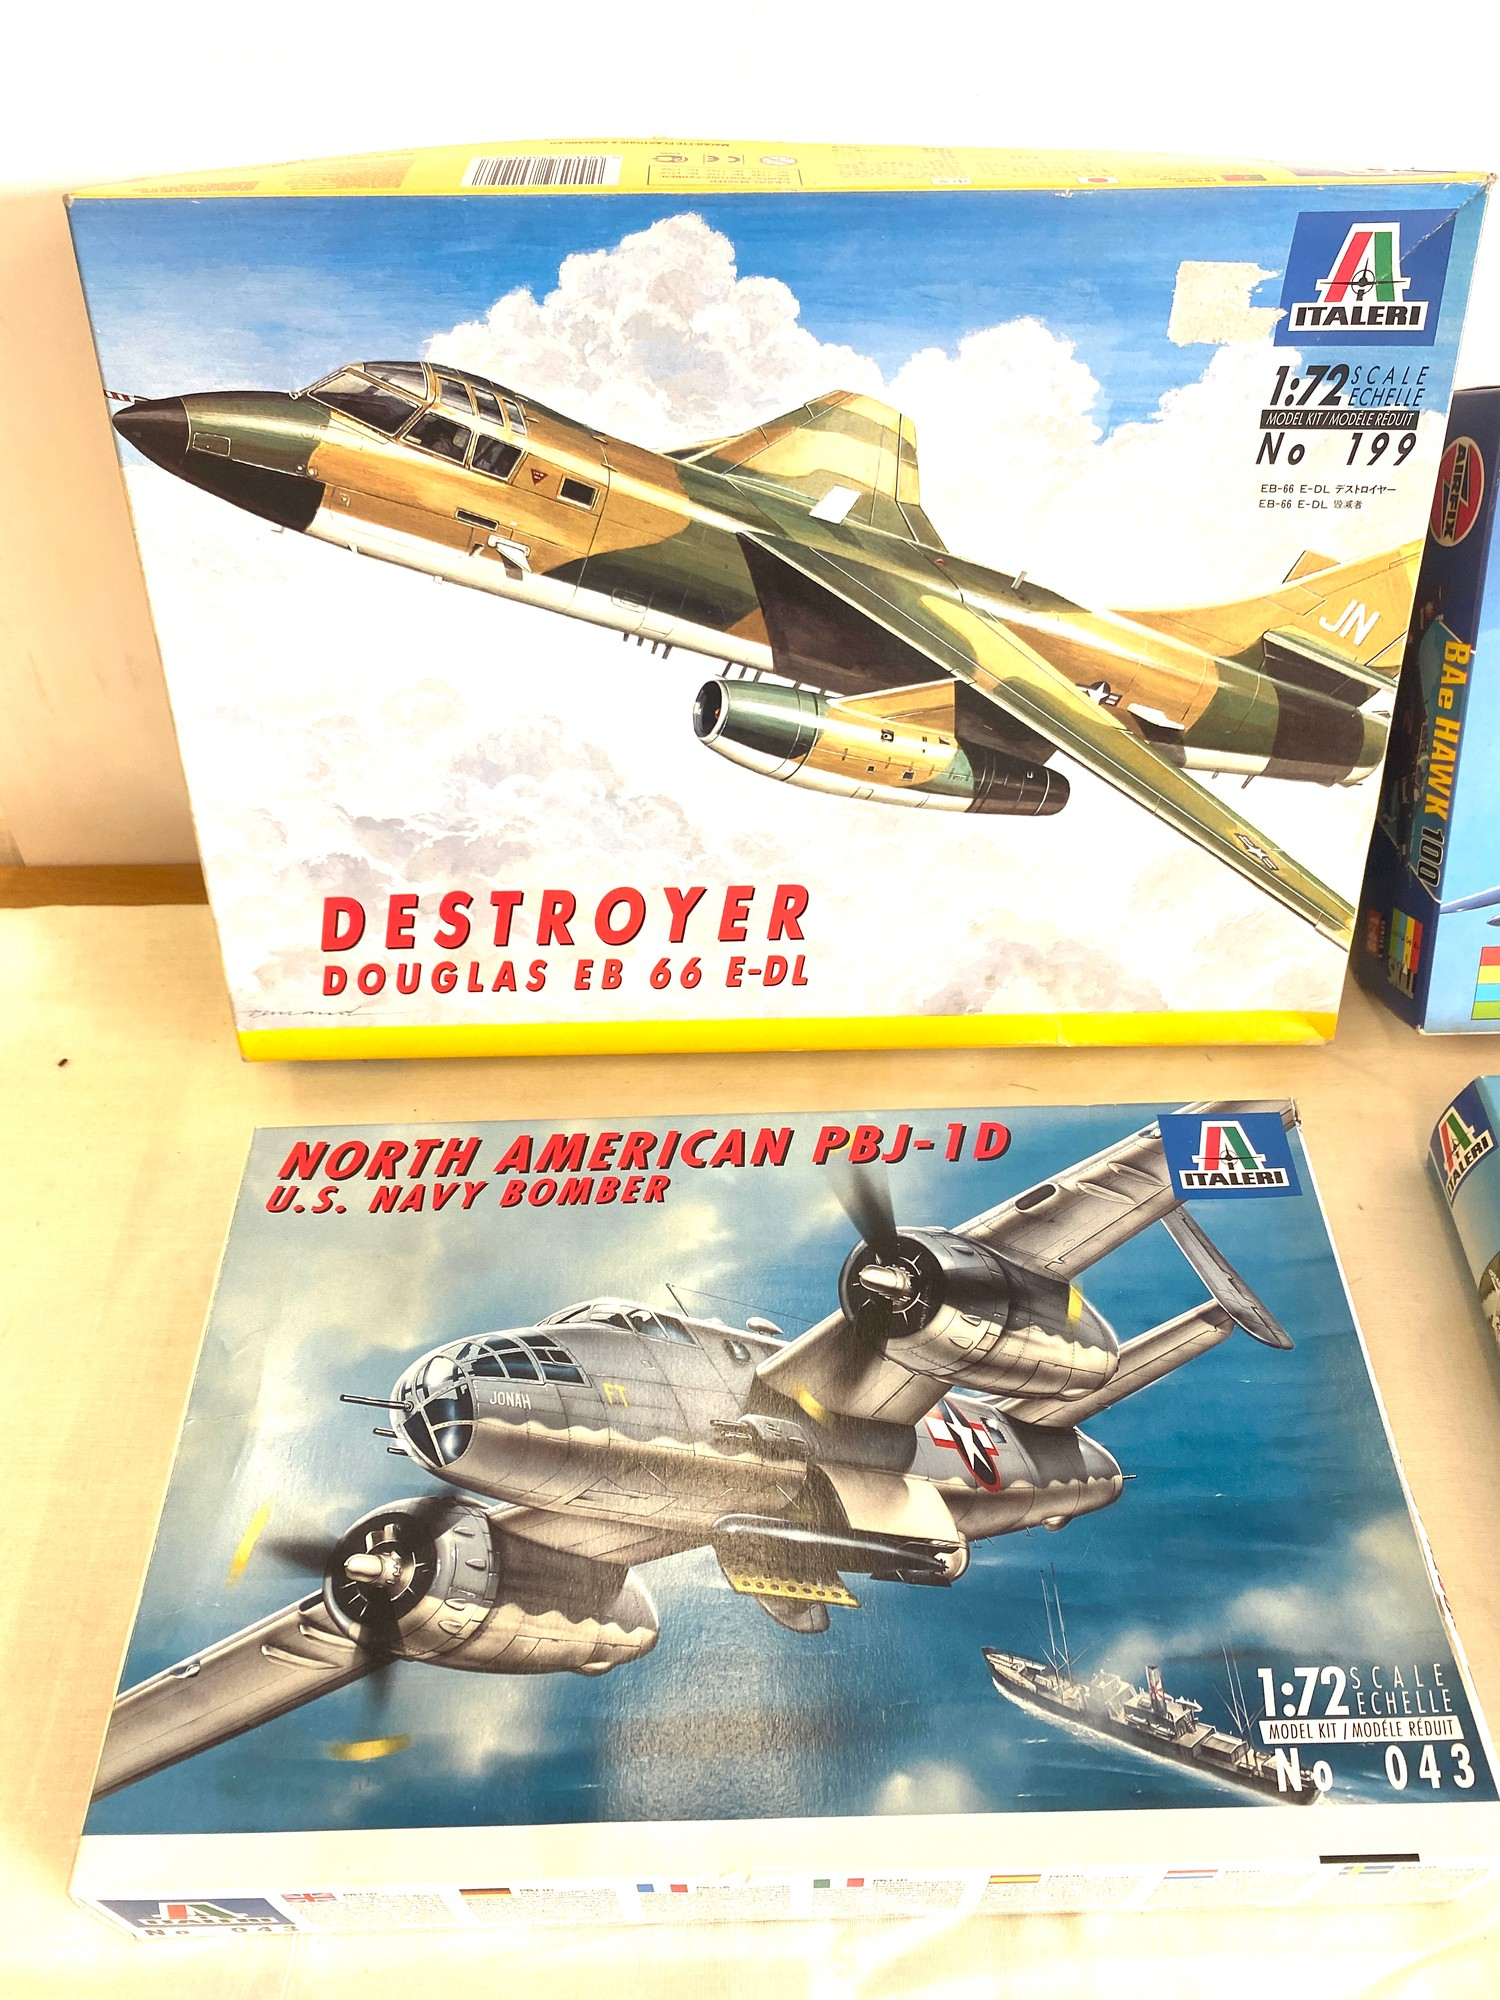 Selection of 4 boxed model air crafts includes, Destroyer Douglas EB 66 E-DL, Airfix BAe Hawk 100, - Image 3 of 3